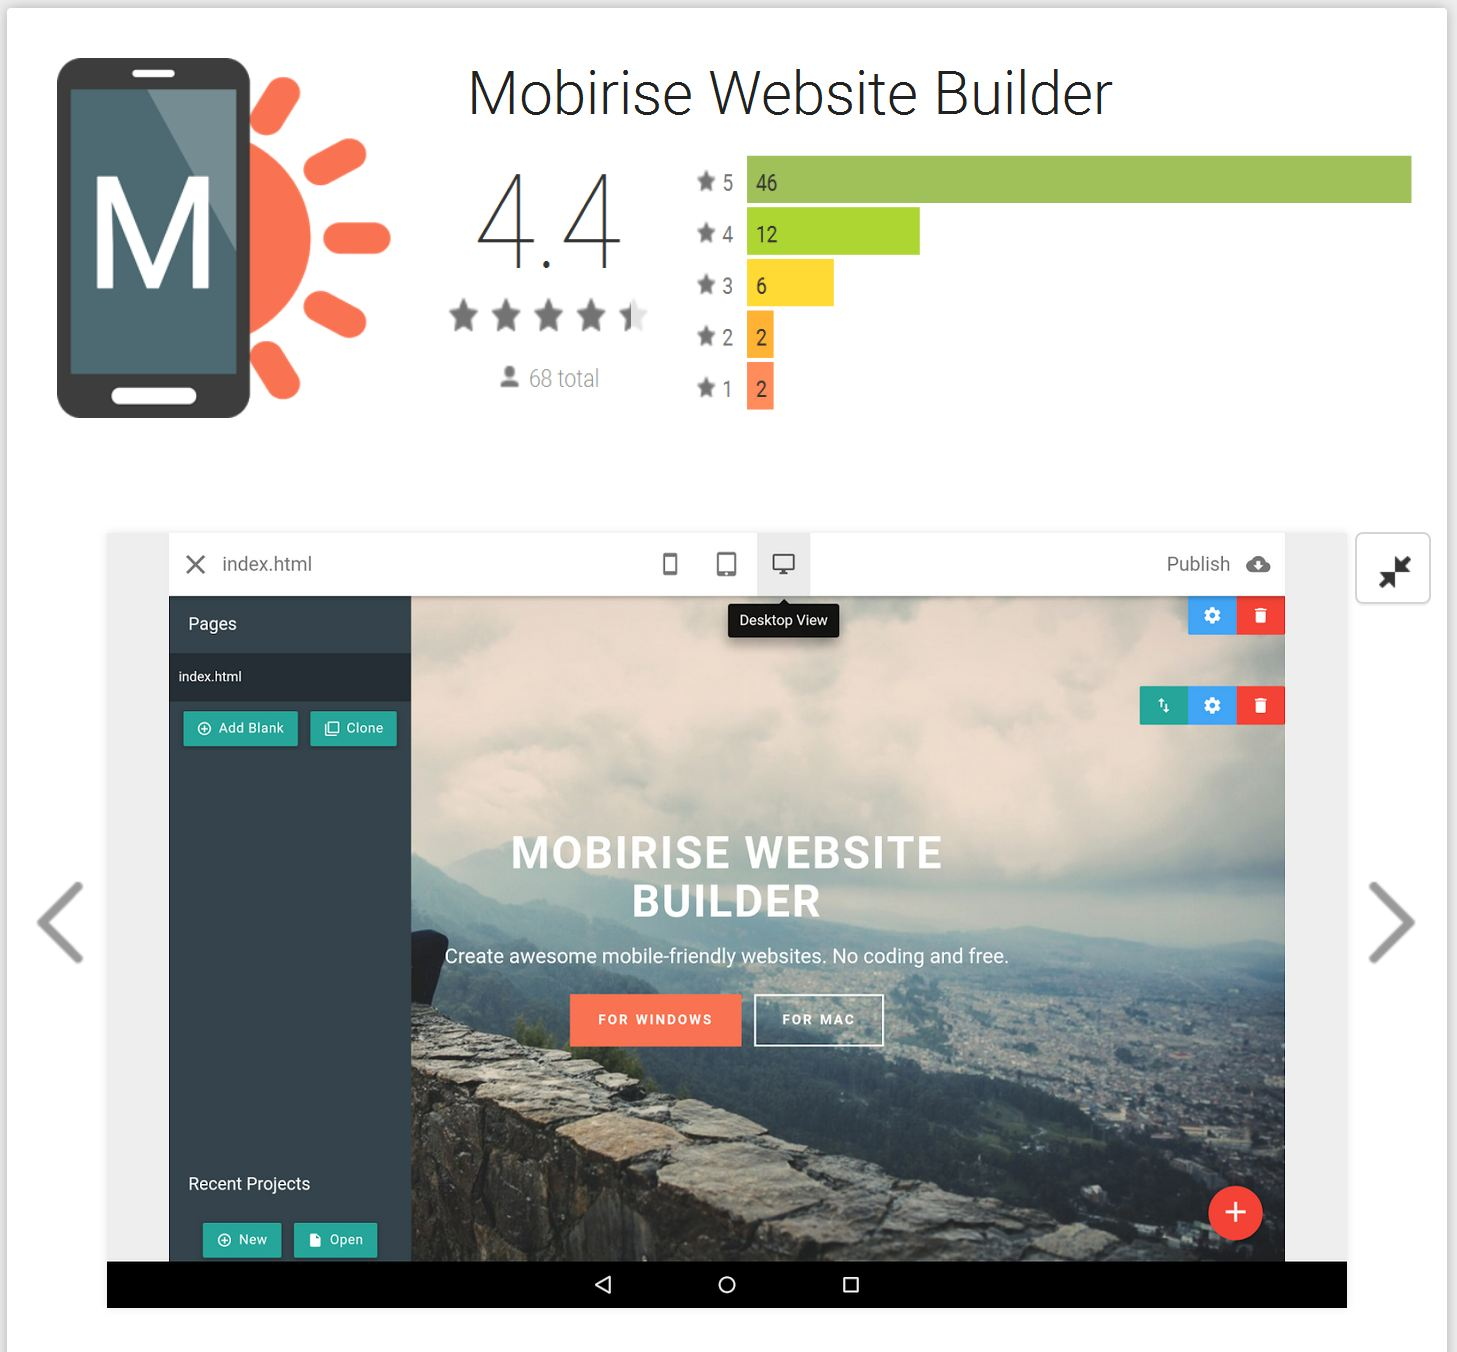 Android Version of Website Builder